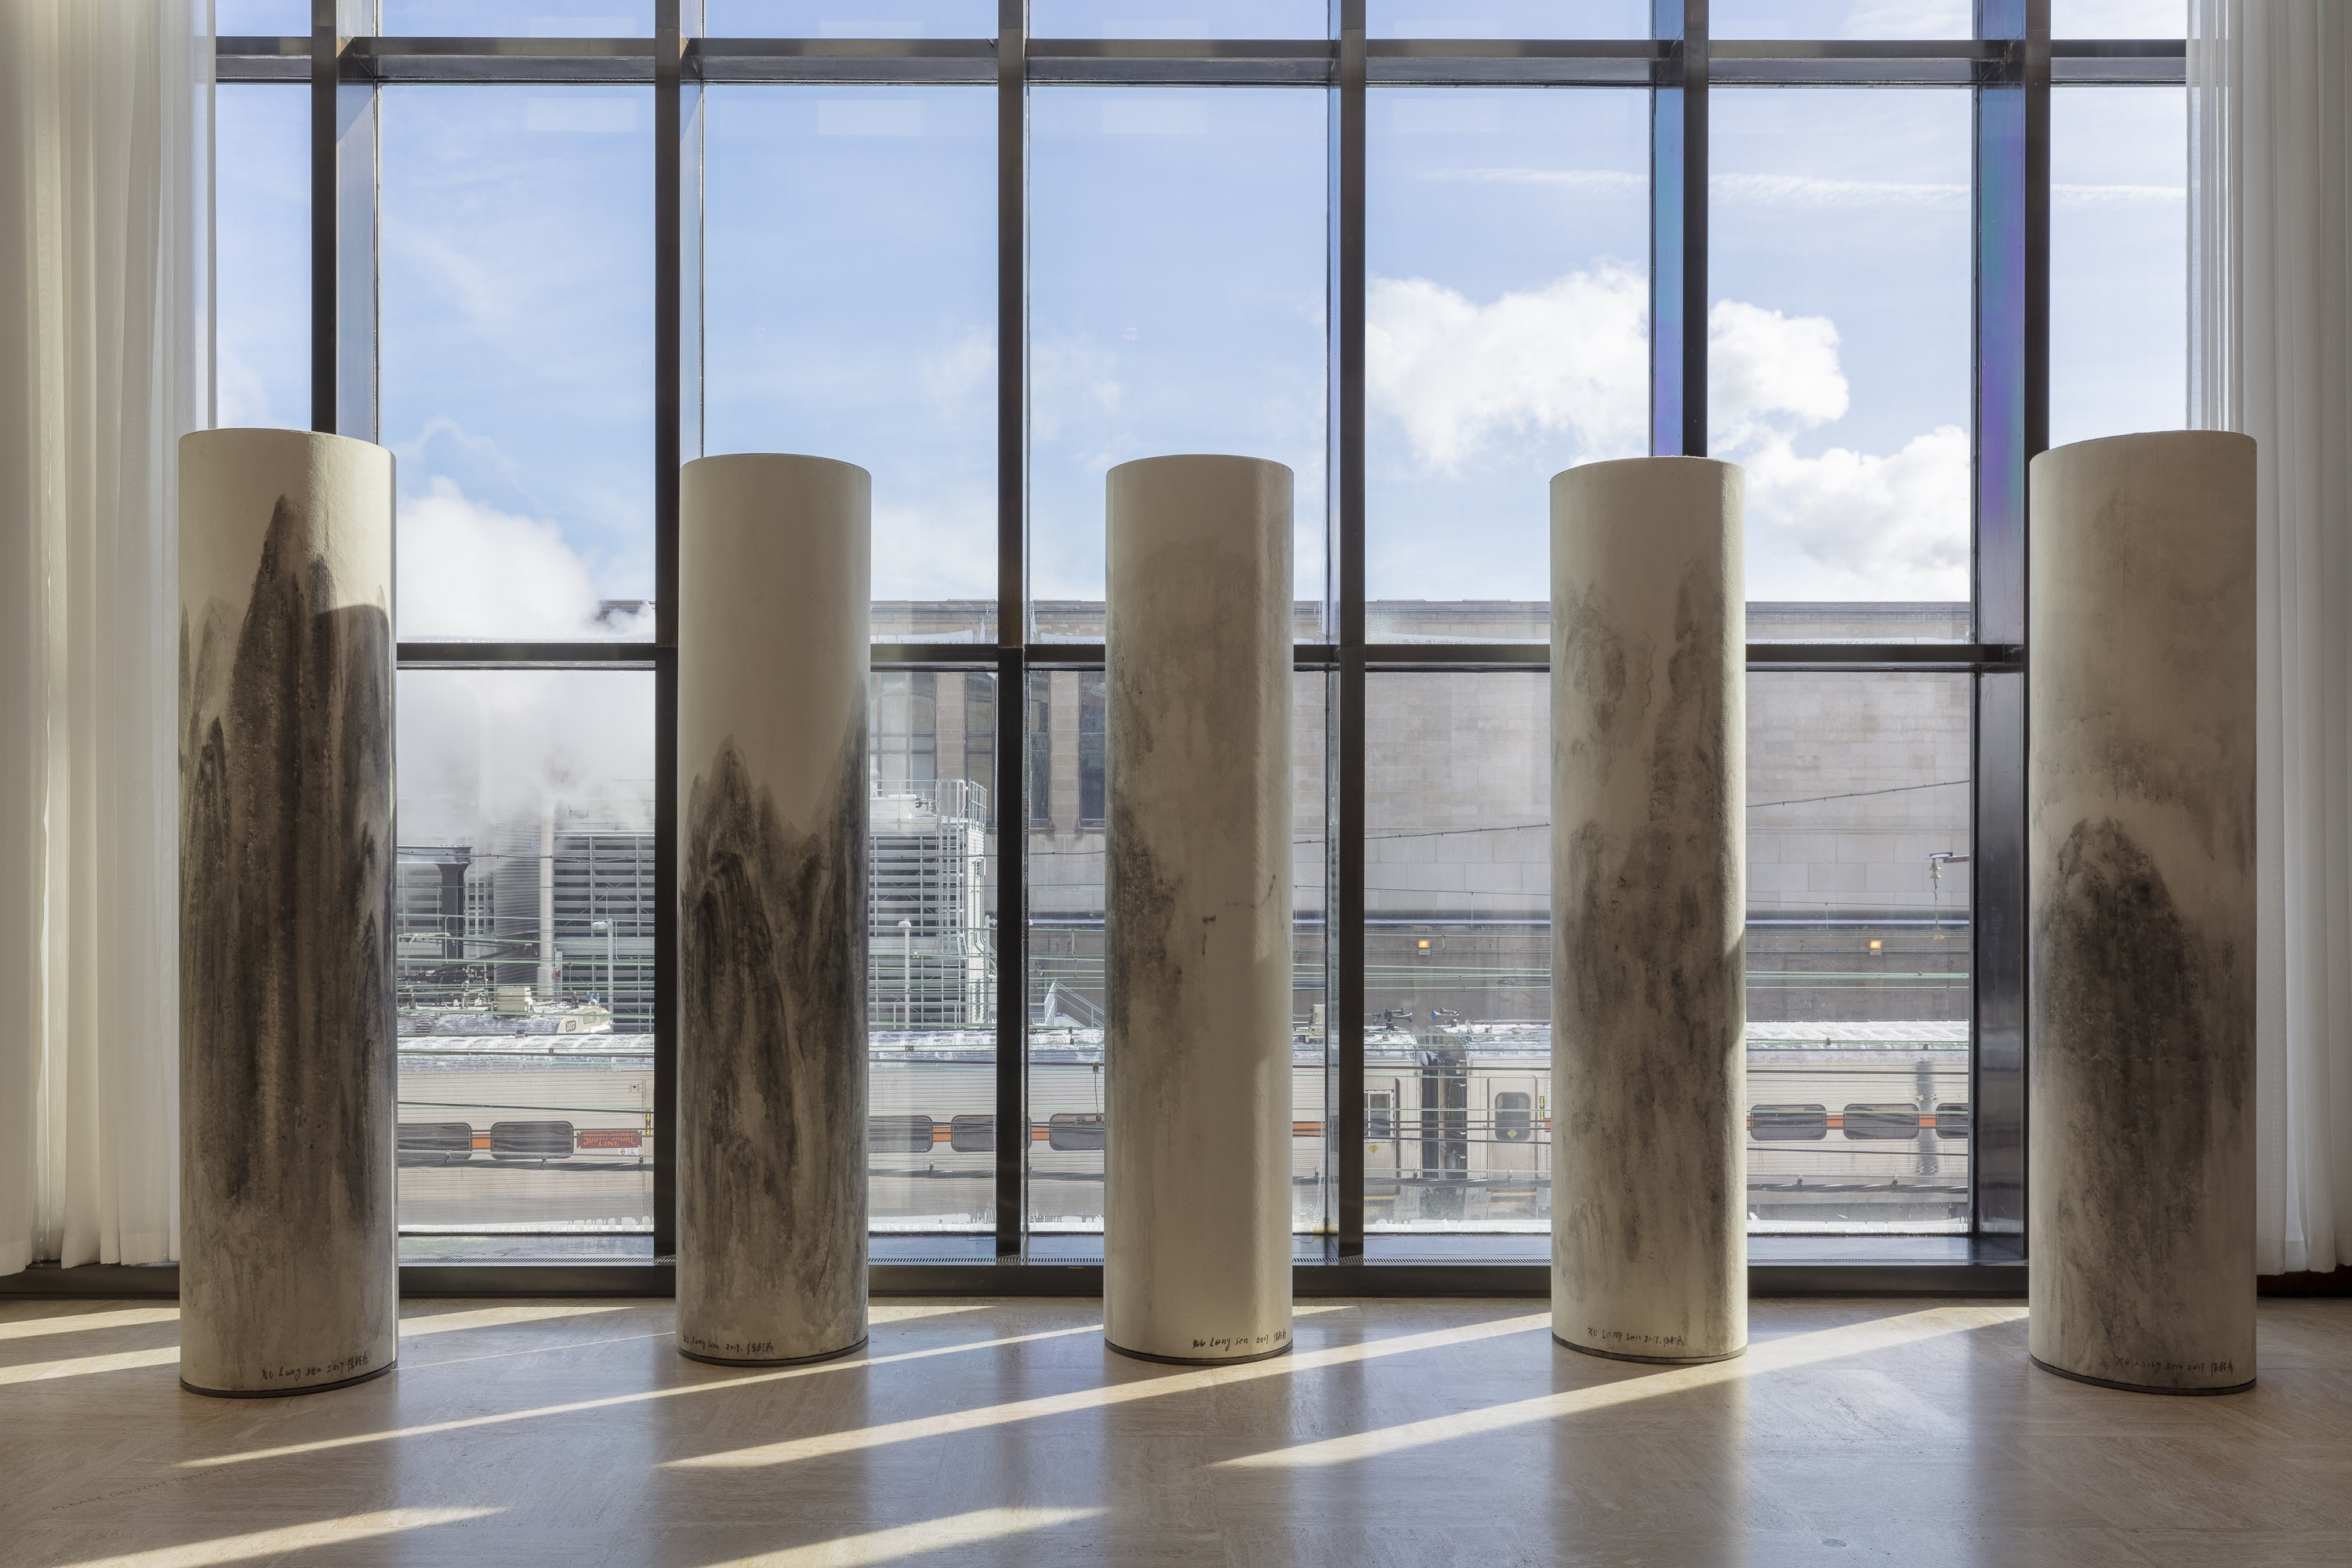 A photo of an installation of five large white columns painted with black ink in front of a large, sunlit window.